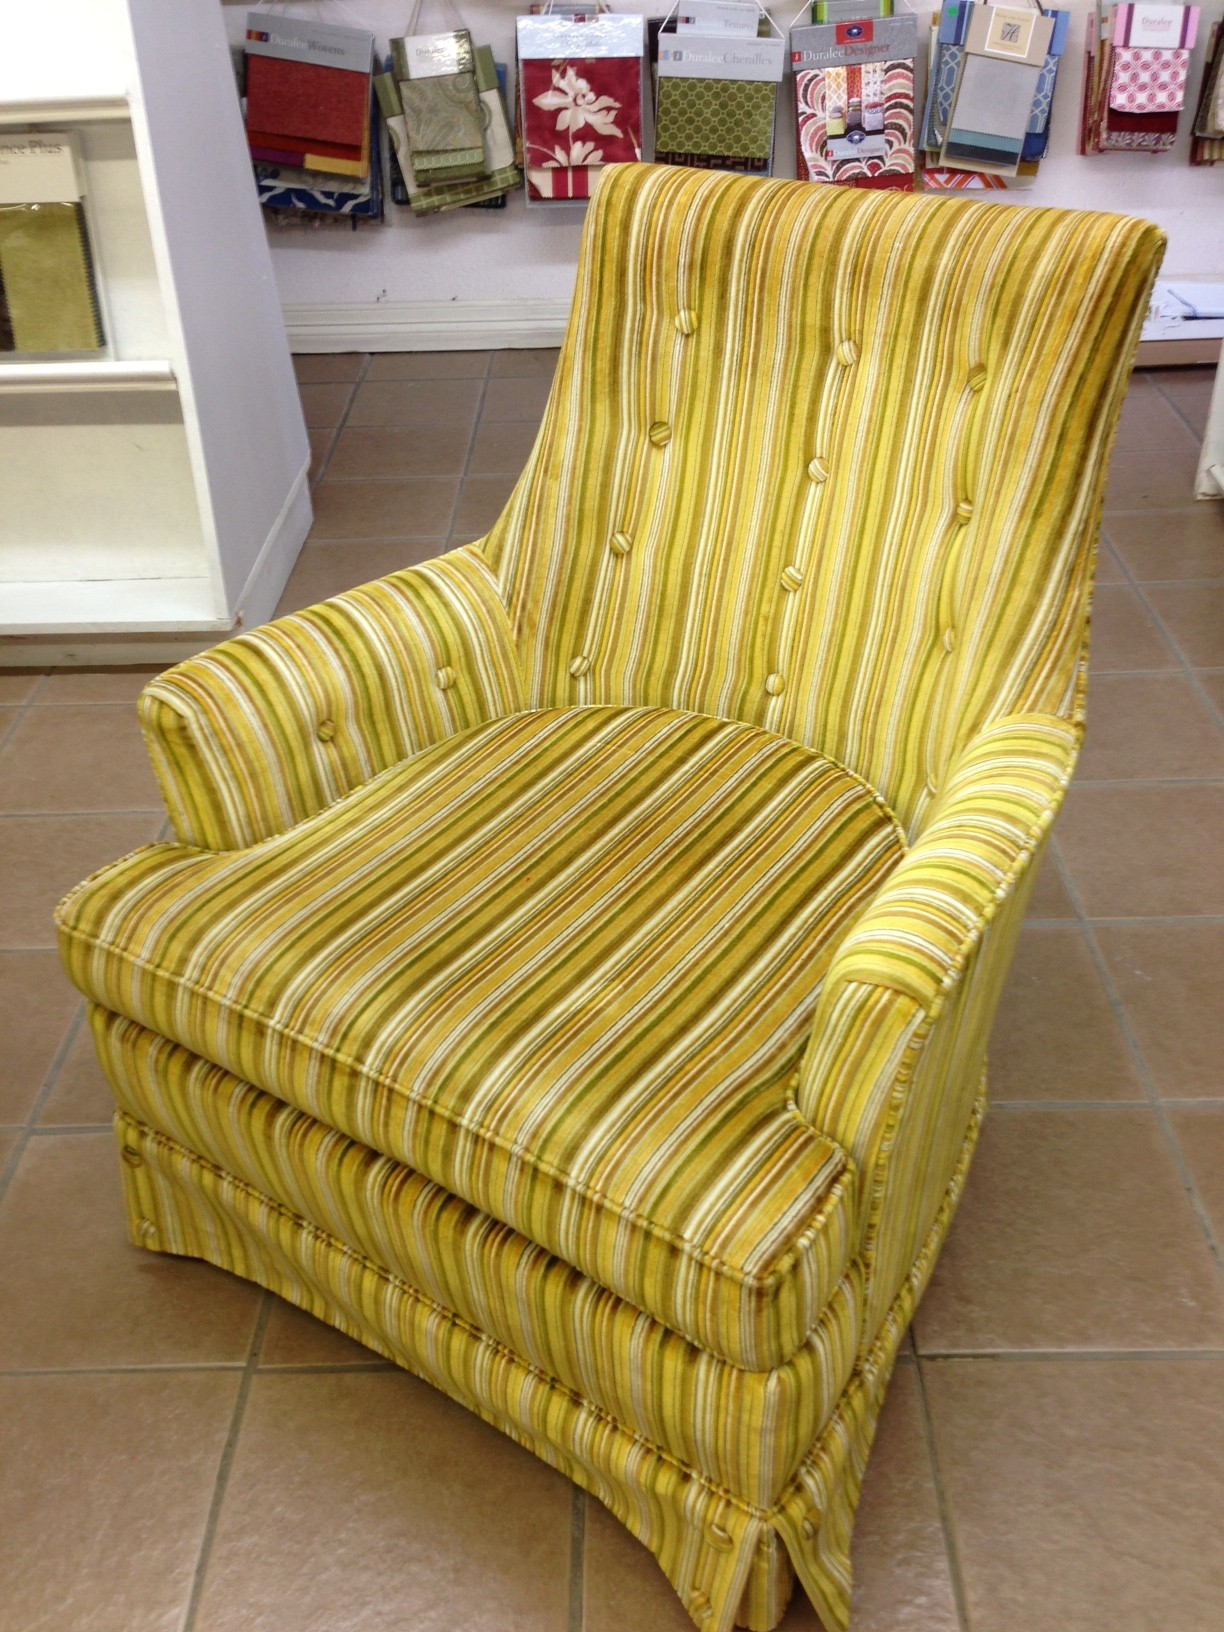 Moms 70s Gold Chair Is Staying Alive wa Reupholstered